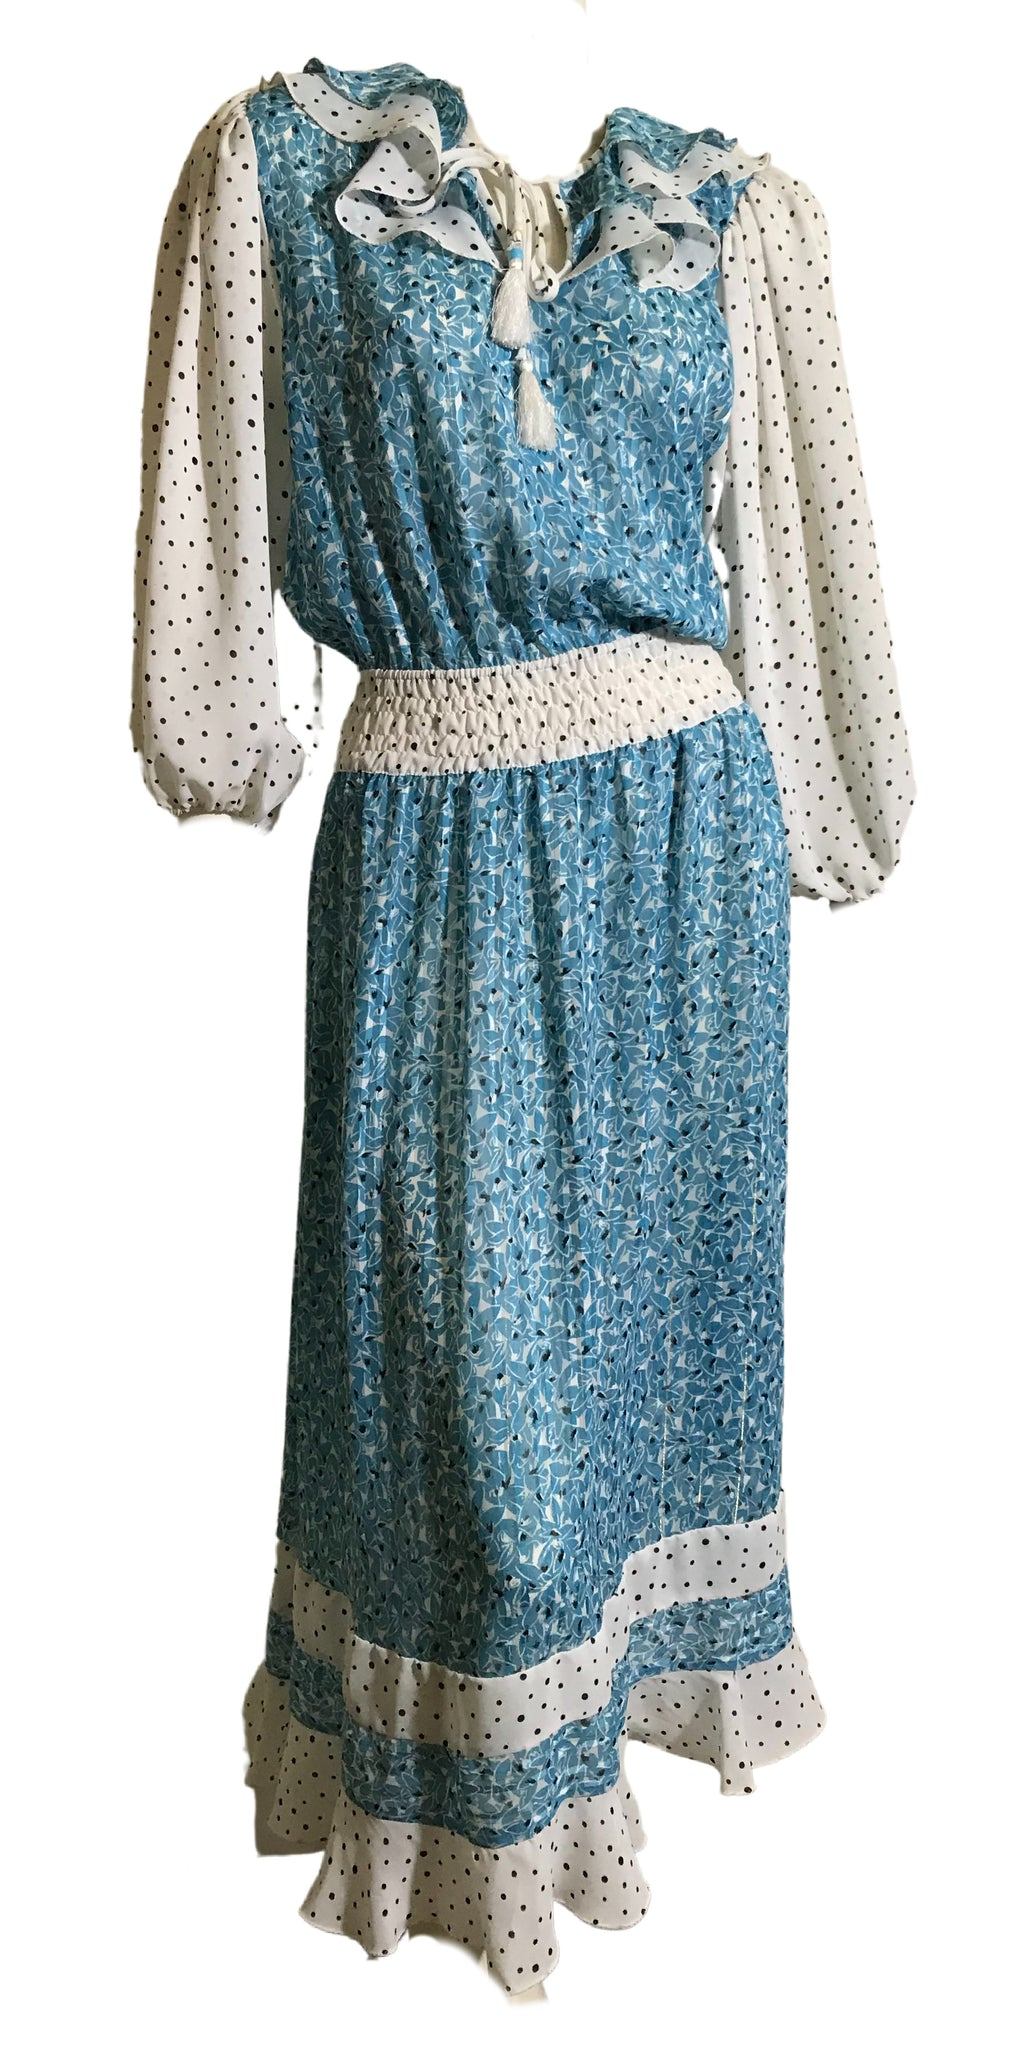 Diane Freis Turquoise Blue Polka Dot and Abstract Print Chiffon Dress circa 1980s